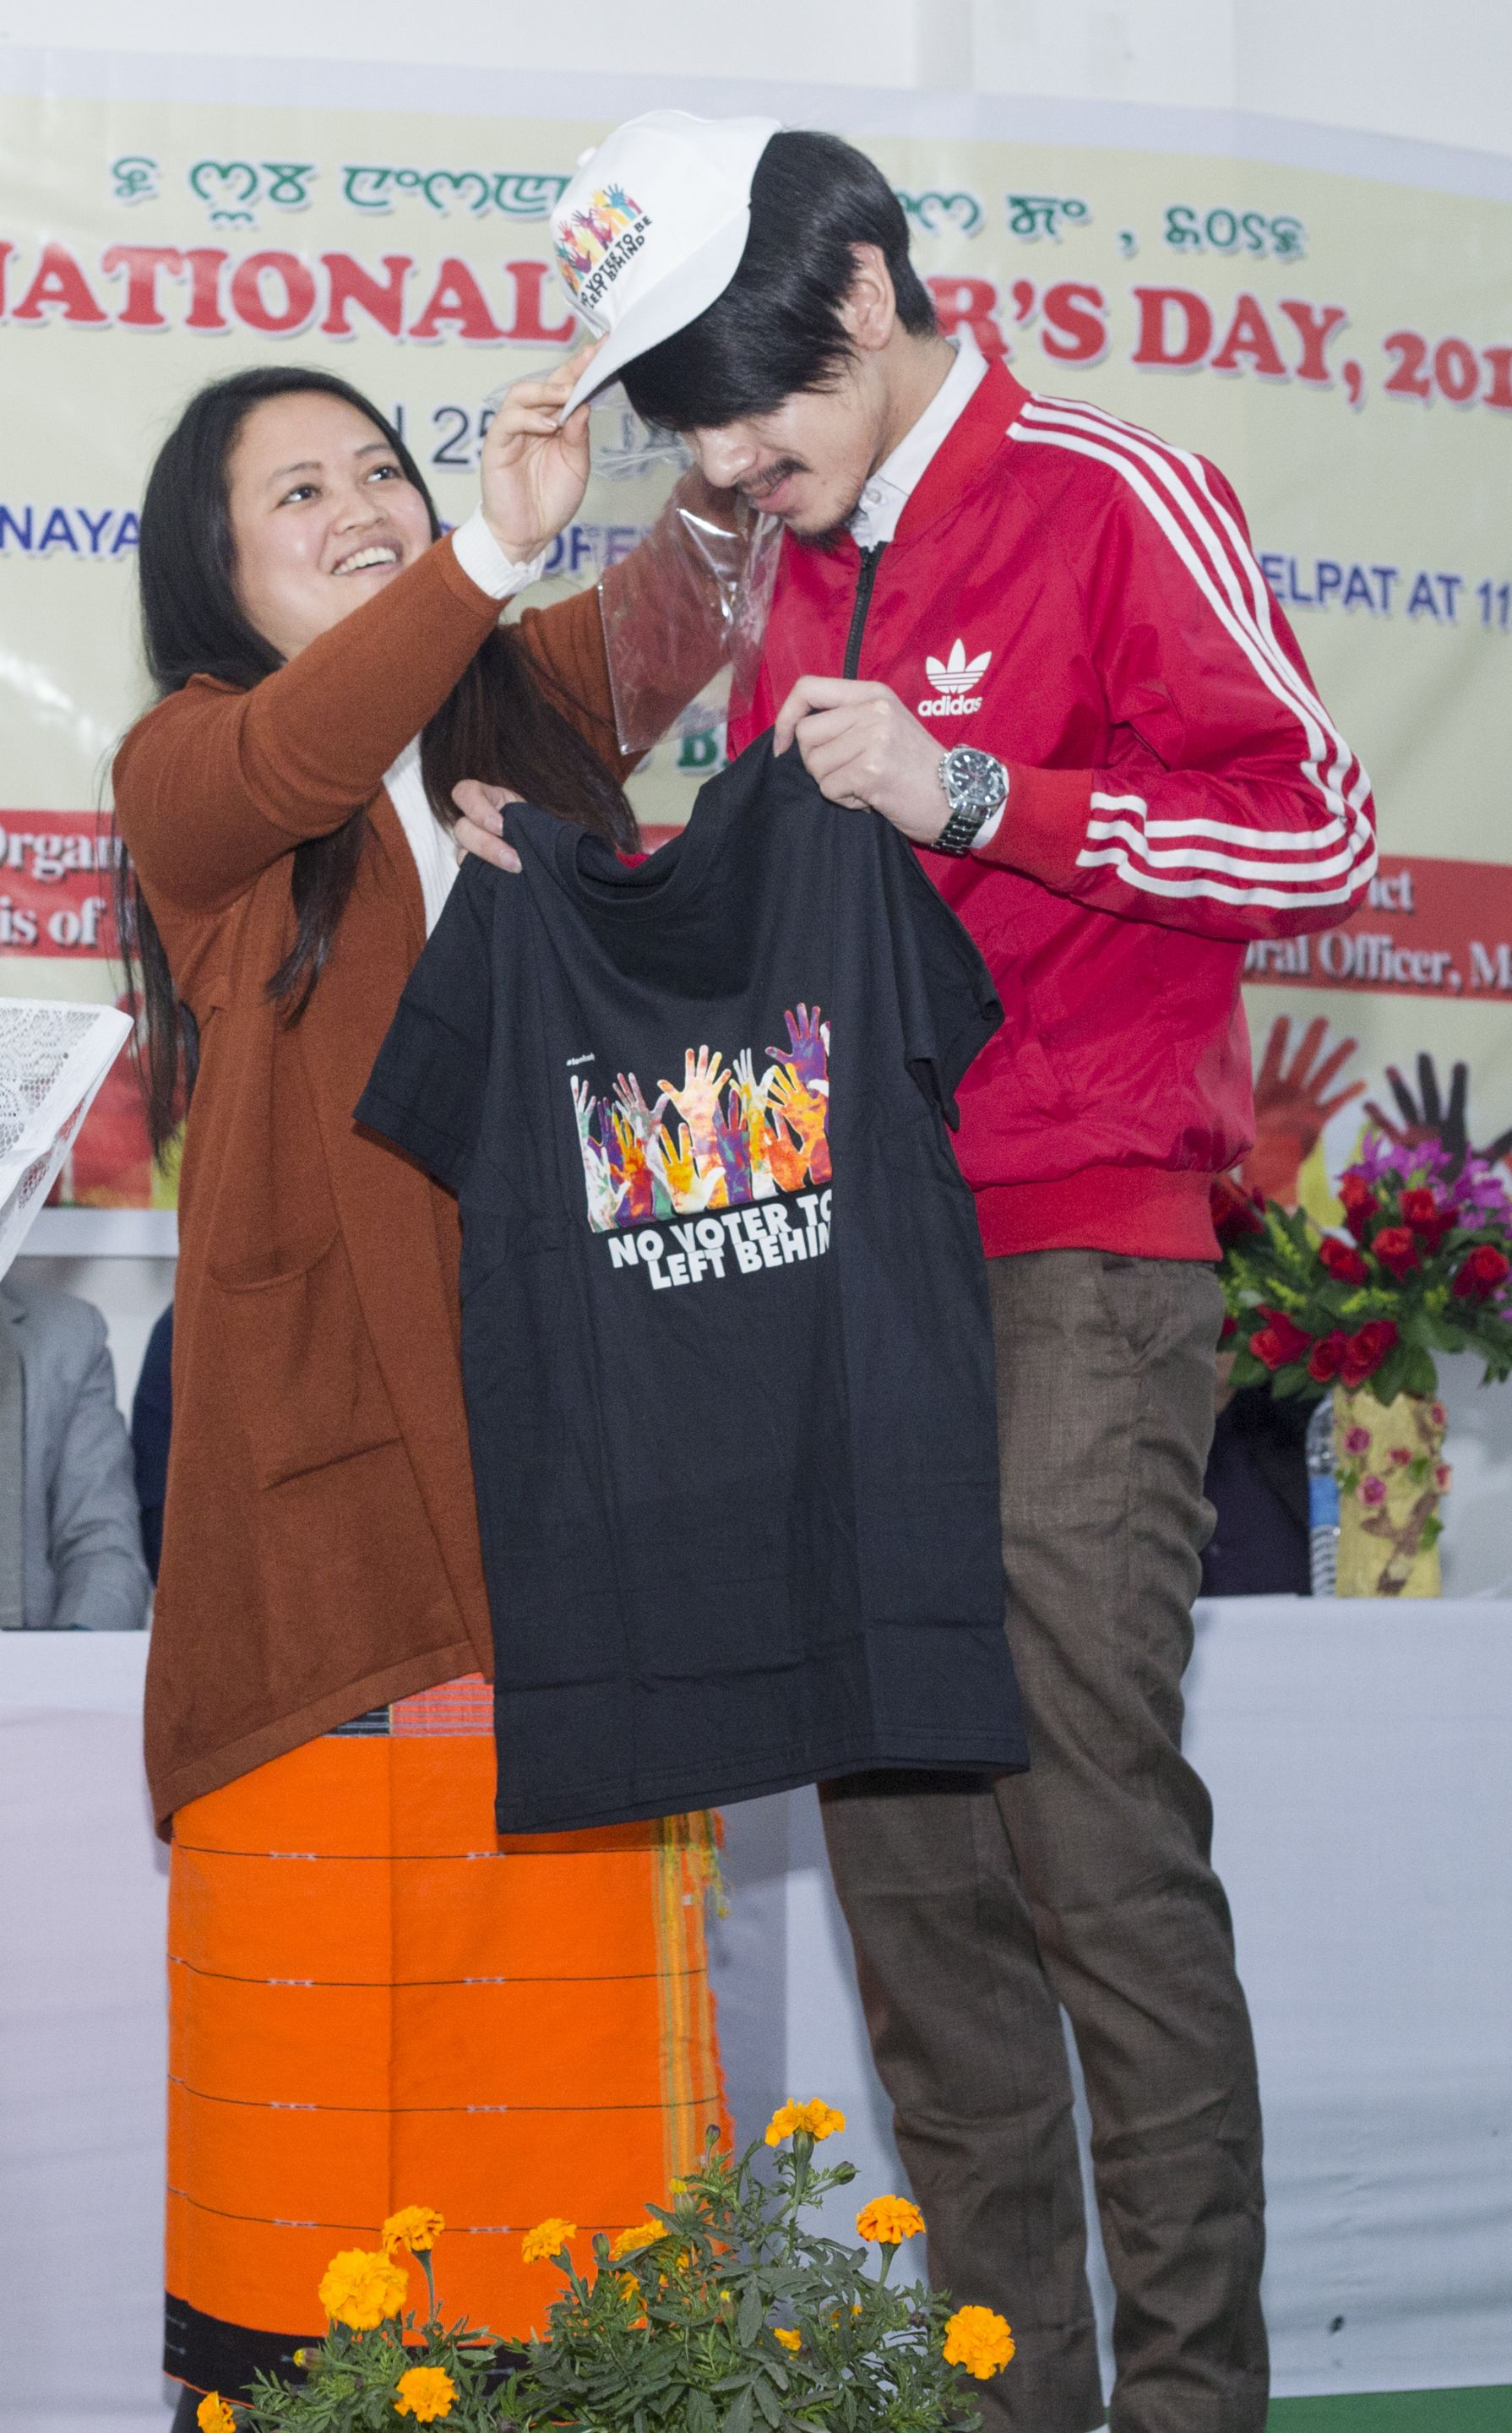 Distribution of EPIC, NVD Cap & T-Shirt by ERO-9&11/SDO Lamphel